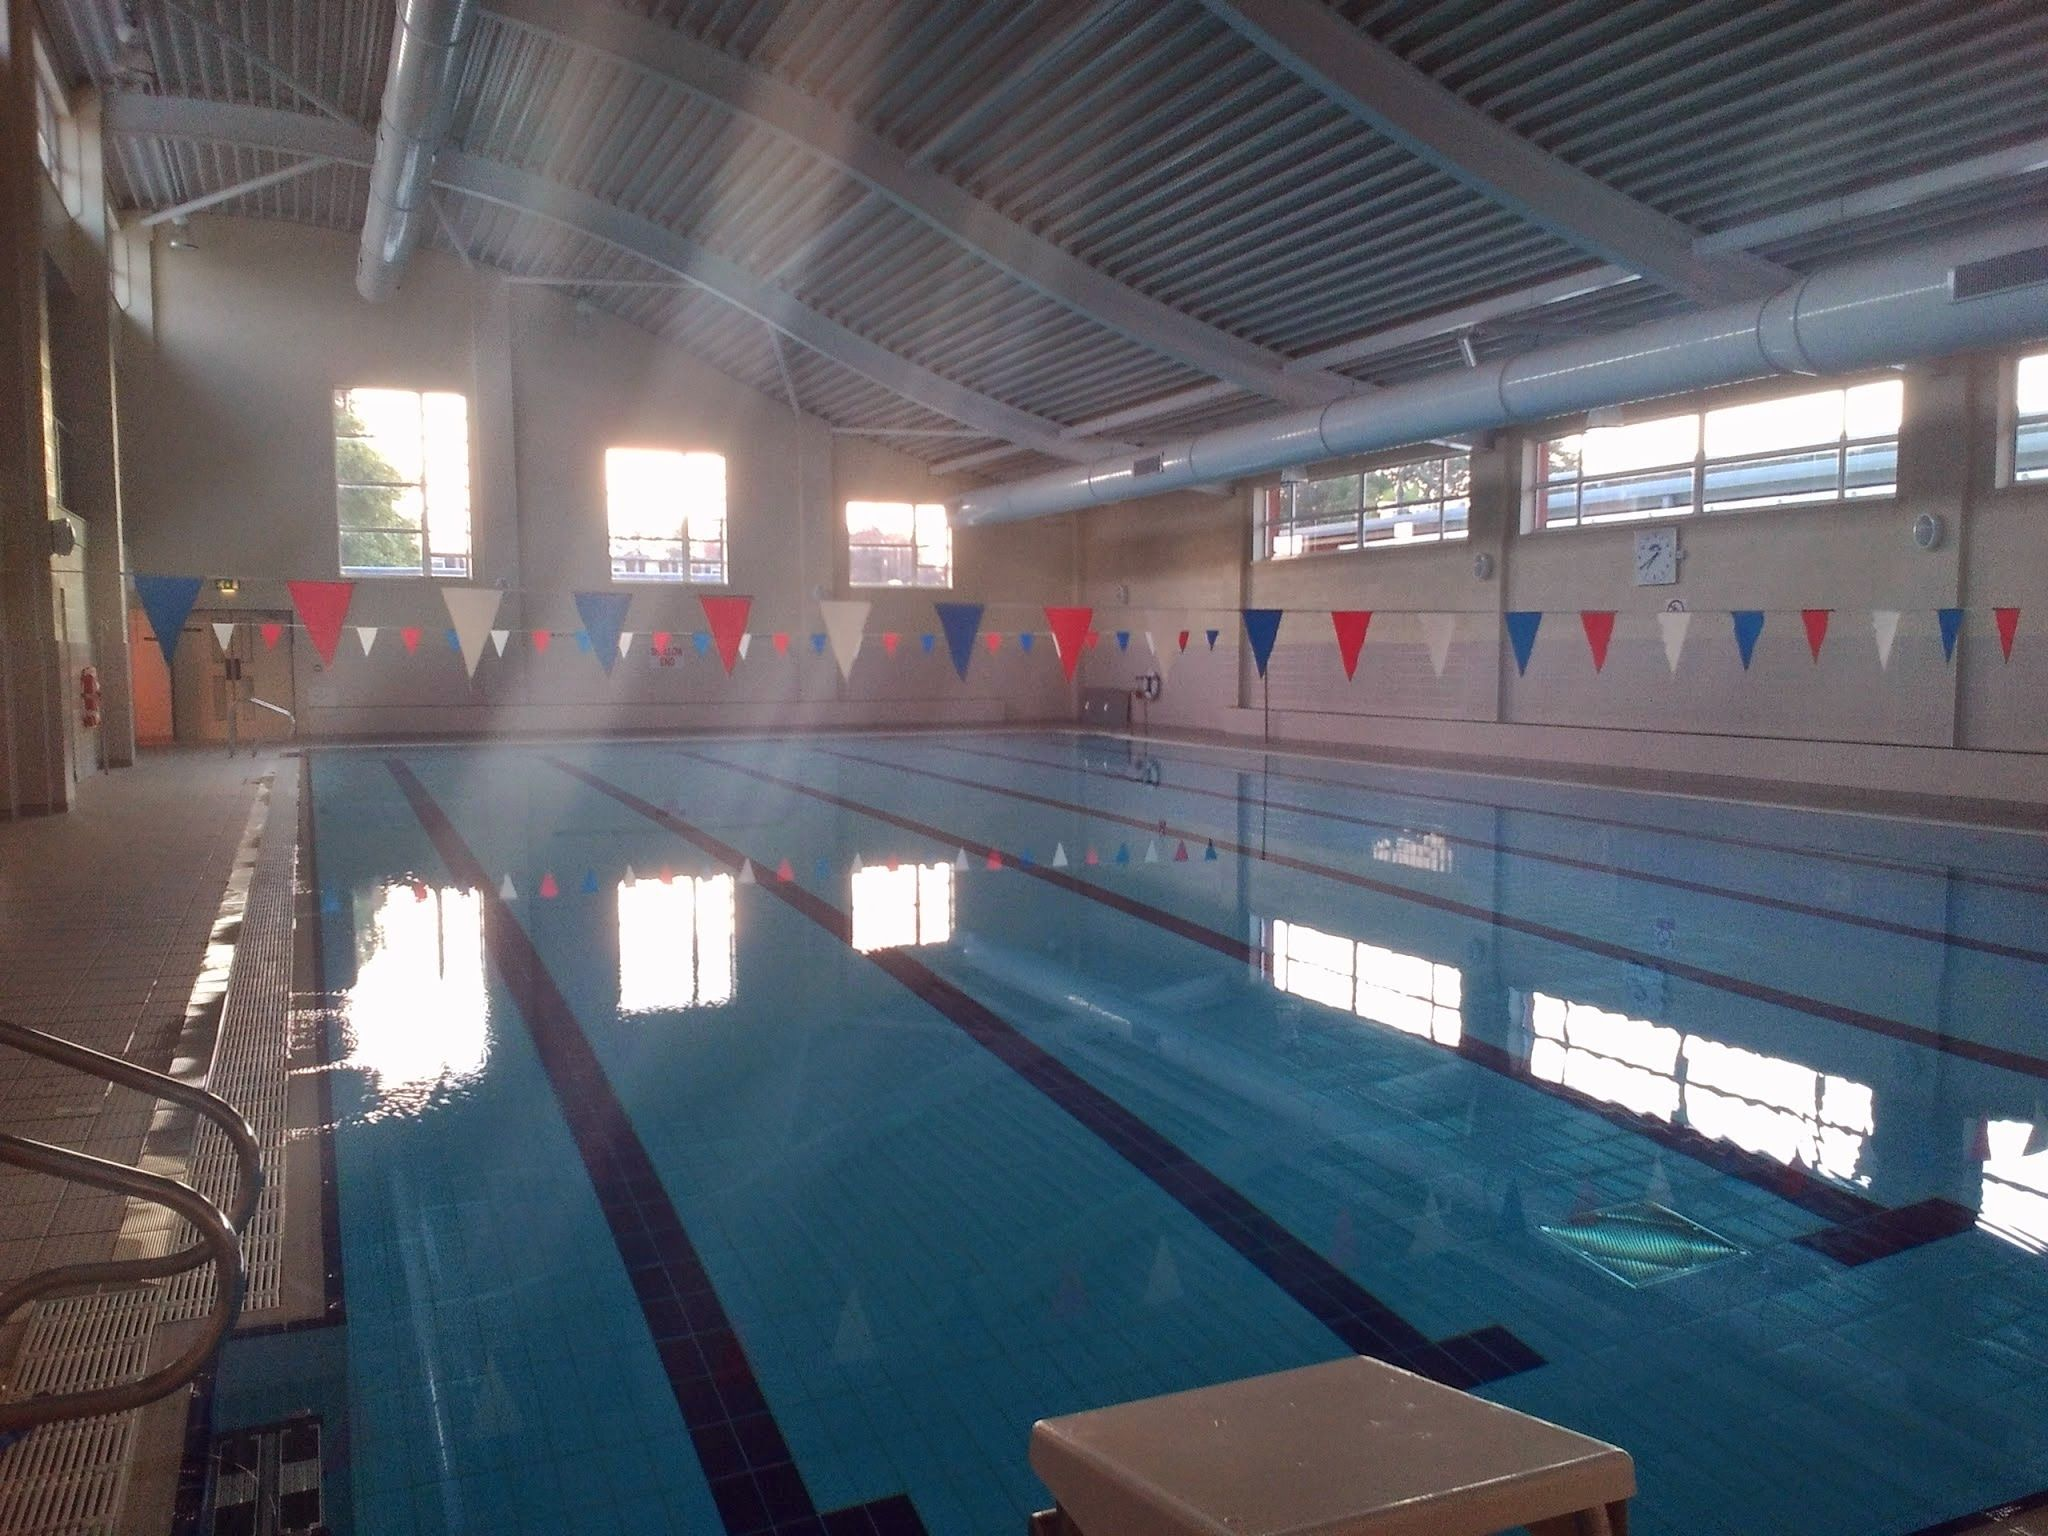 This is the swimming pool at Sutton Valence School, and one of the ...